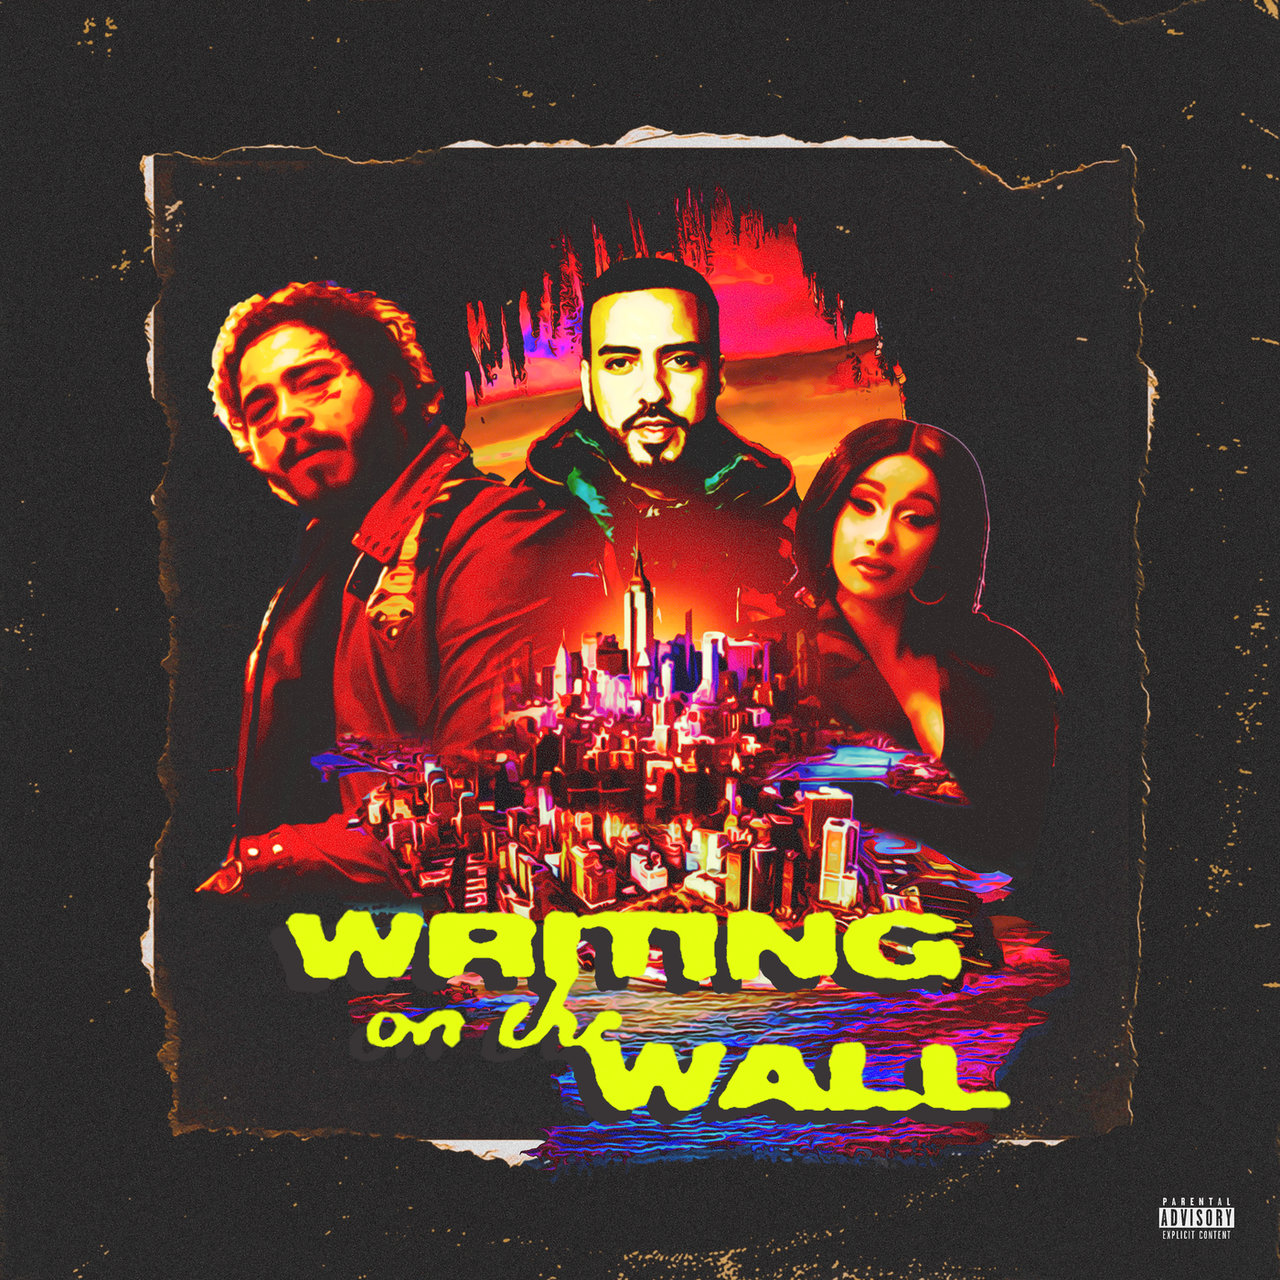 French Montana - Writing On The Wall (ft. Post Malone, Cardi B and Rvssian)